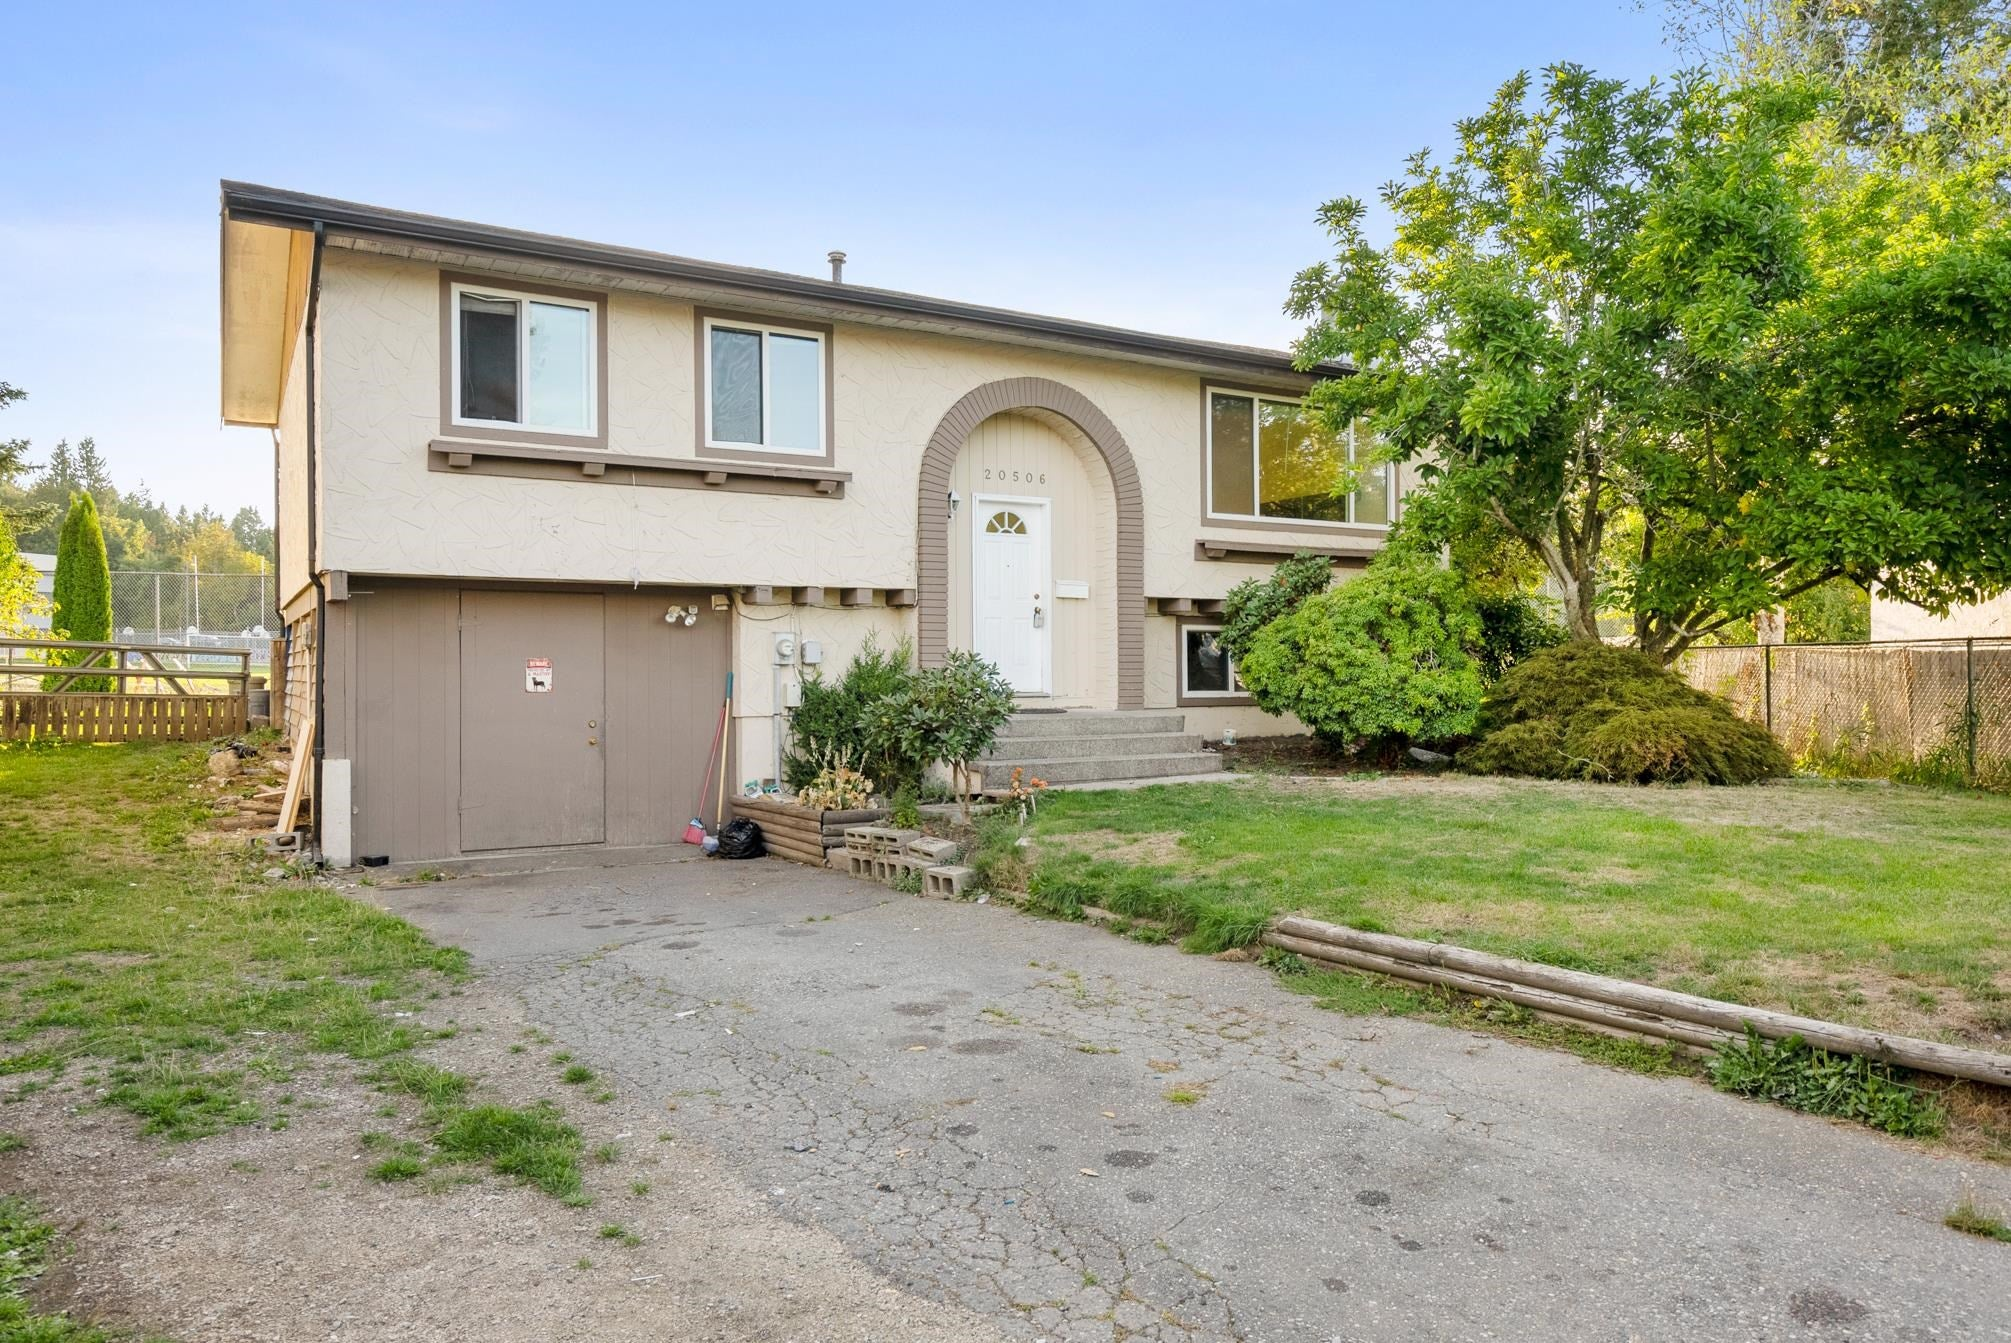 20506 48B AVENUE - Langley City House/Single Family for sale, 4 Bedrooms (R2614937) - #1